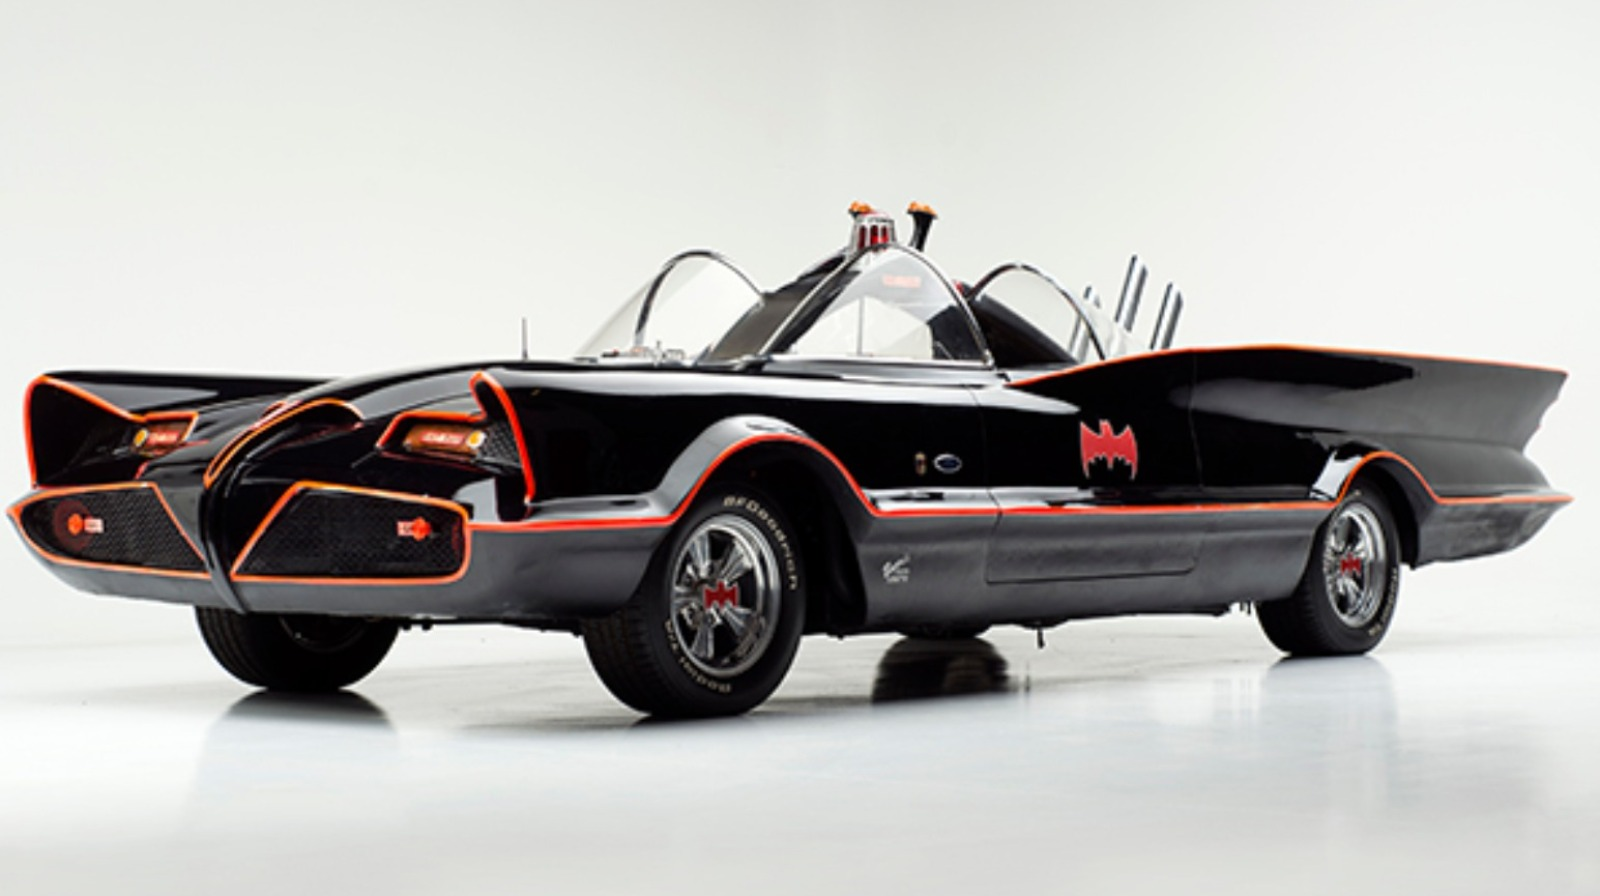 Original 1960s Batmobile goes up for sale at auction - ITV ...